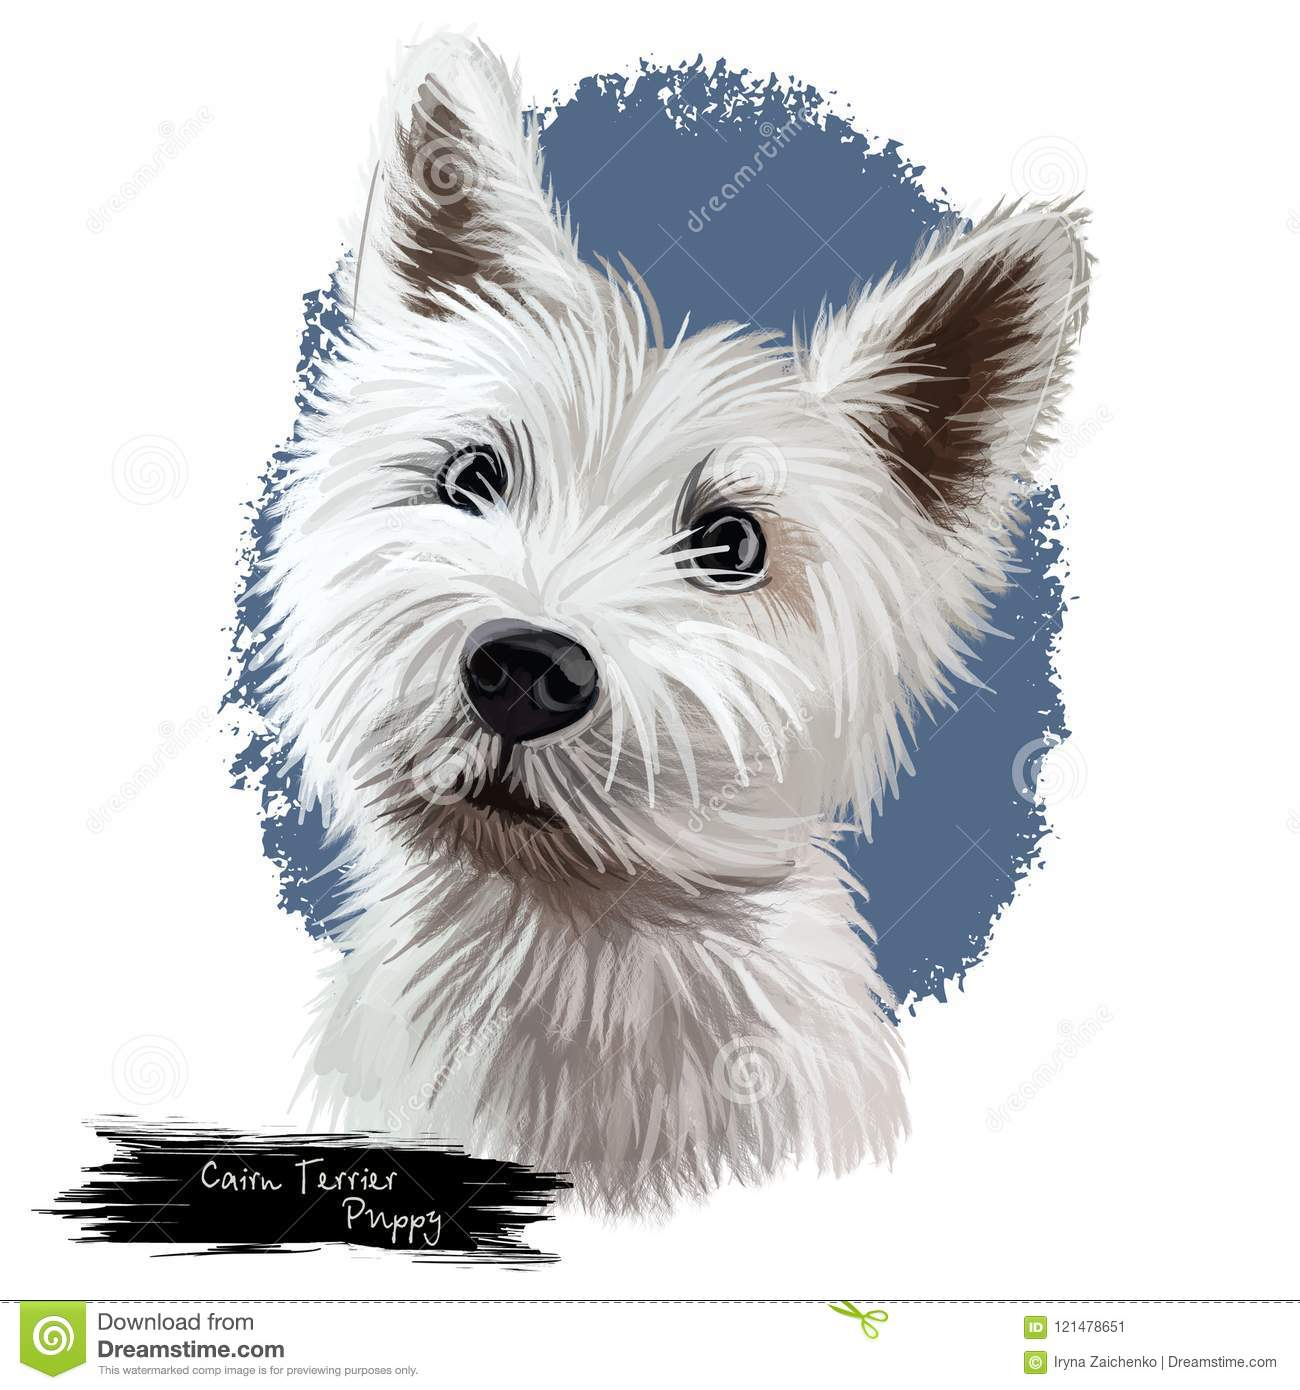 Cairn Terrier Puppy Portrait Digital Art Illustration Stock ...